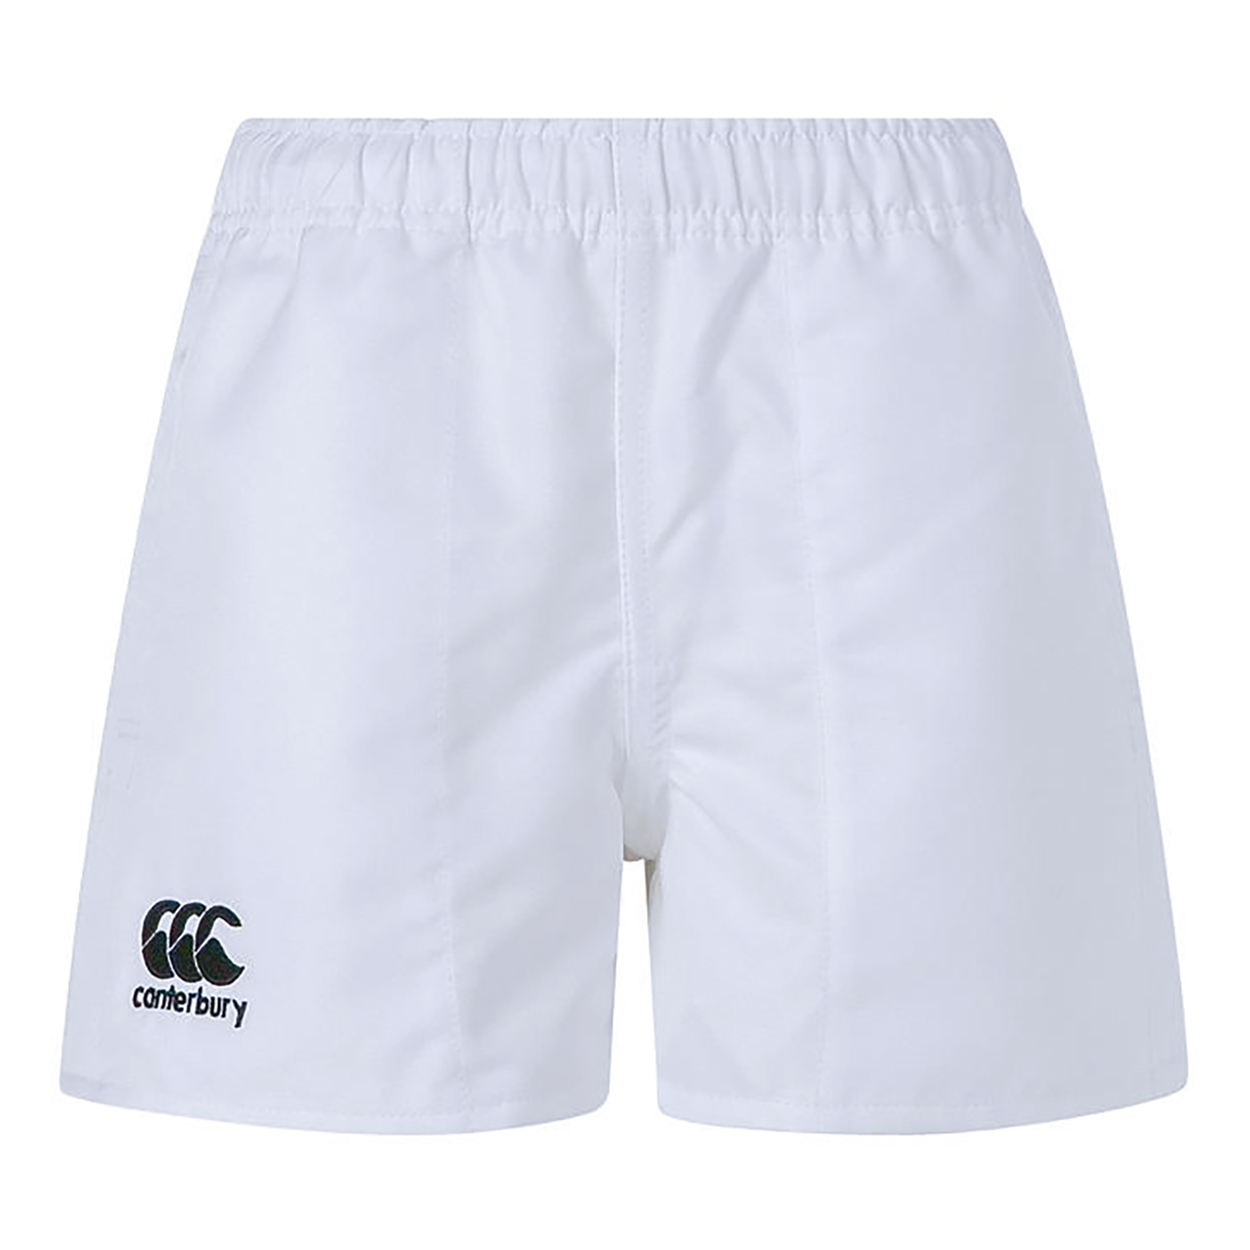 Canterbury Childrens/Kids Polyester Rugby Shorts (12 Years) (White)